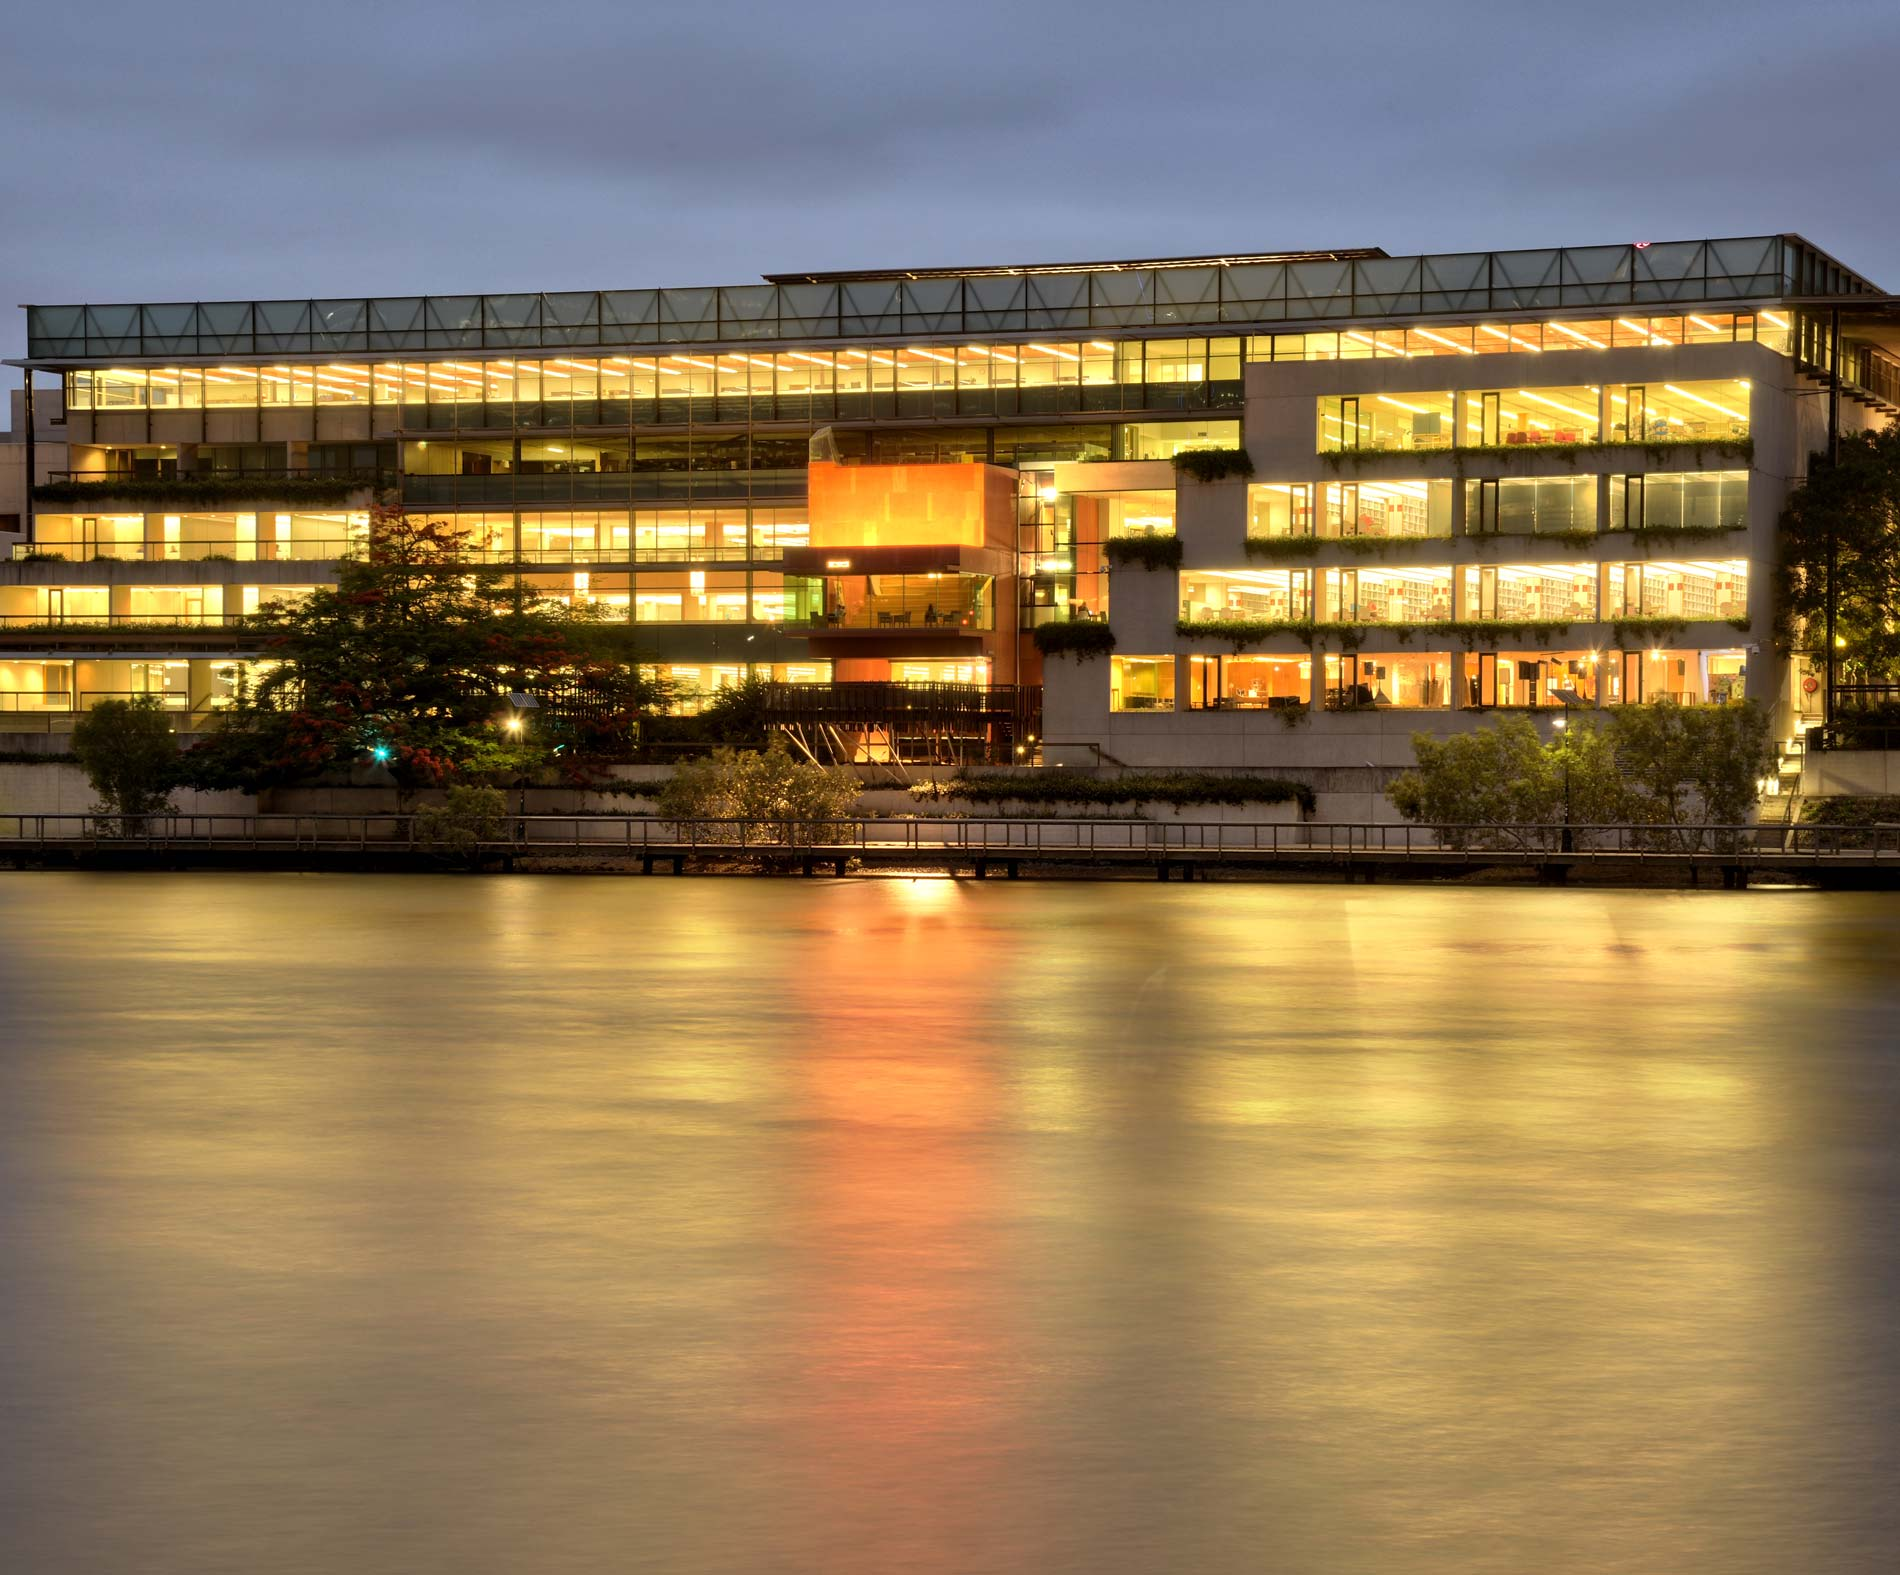 Exterior view of the State Library across the river at evening time